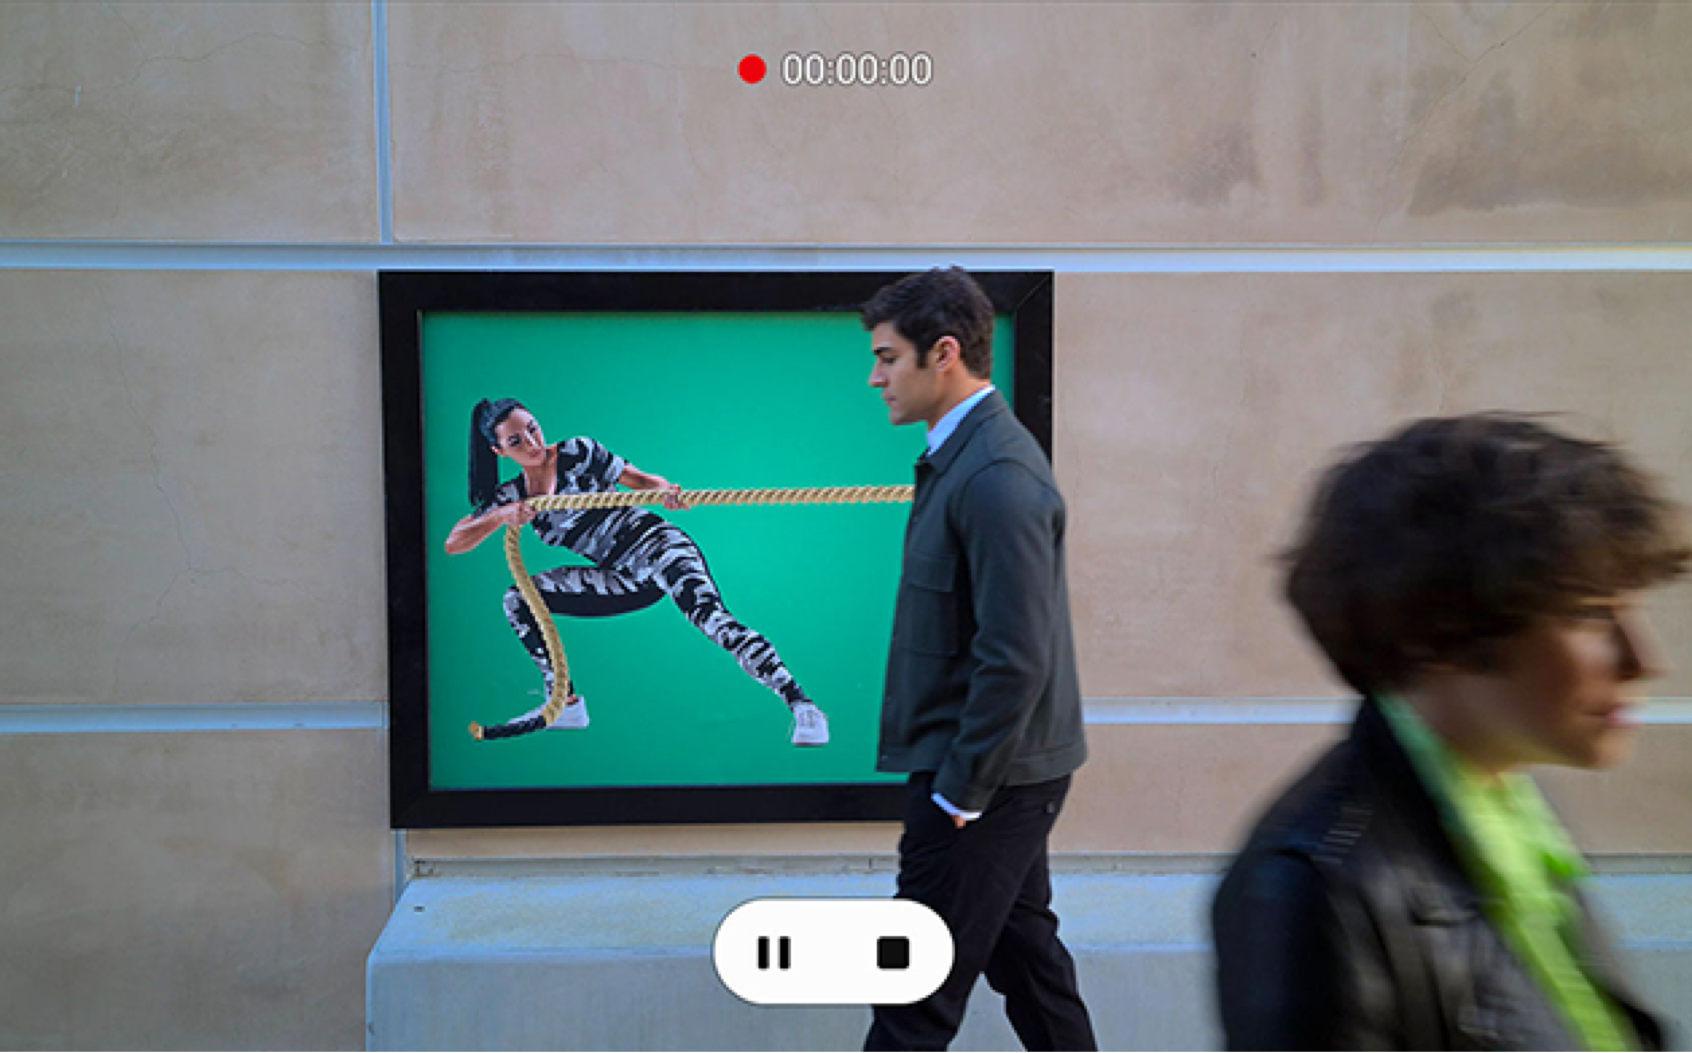 Image of a video recording people in an art gallery